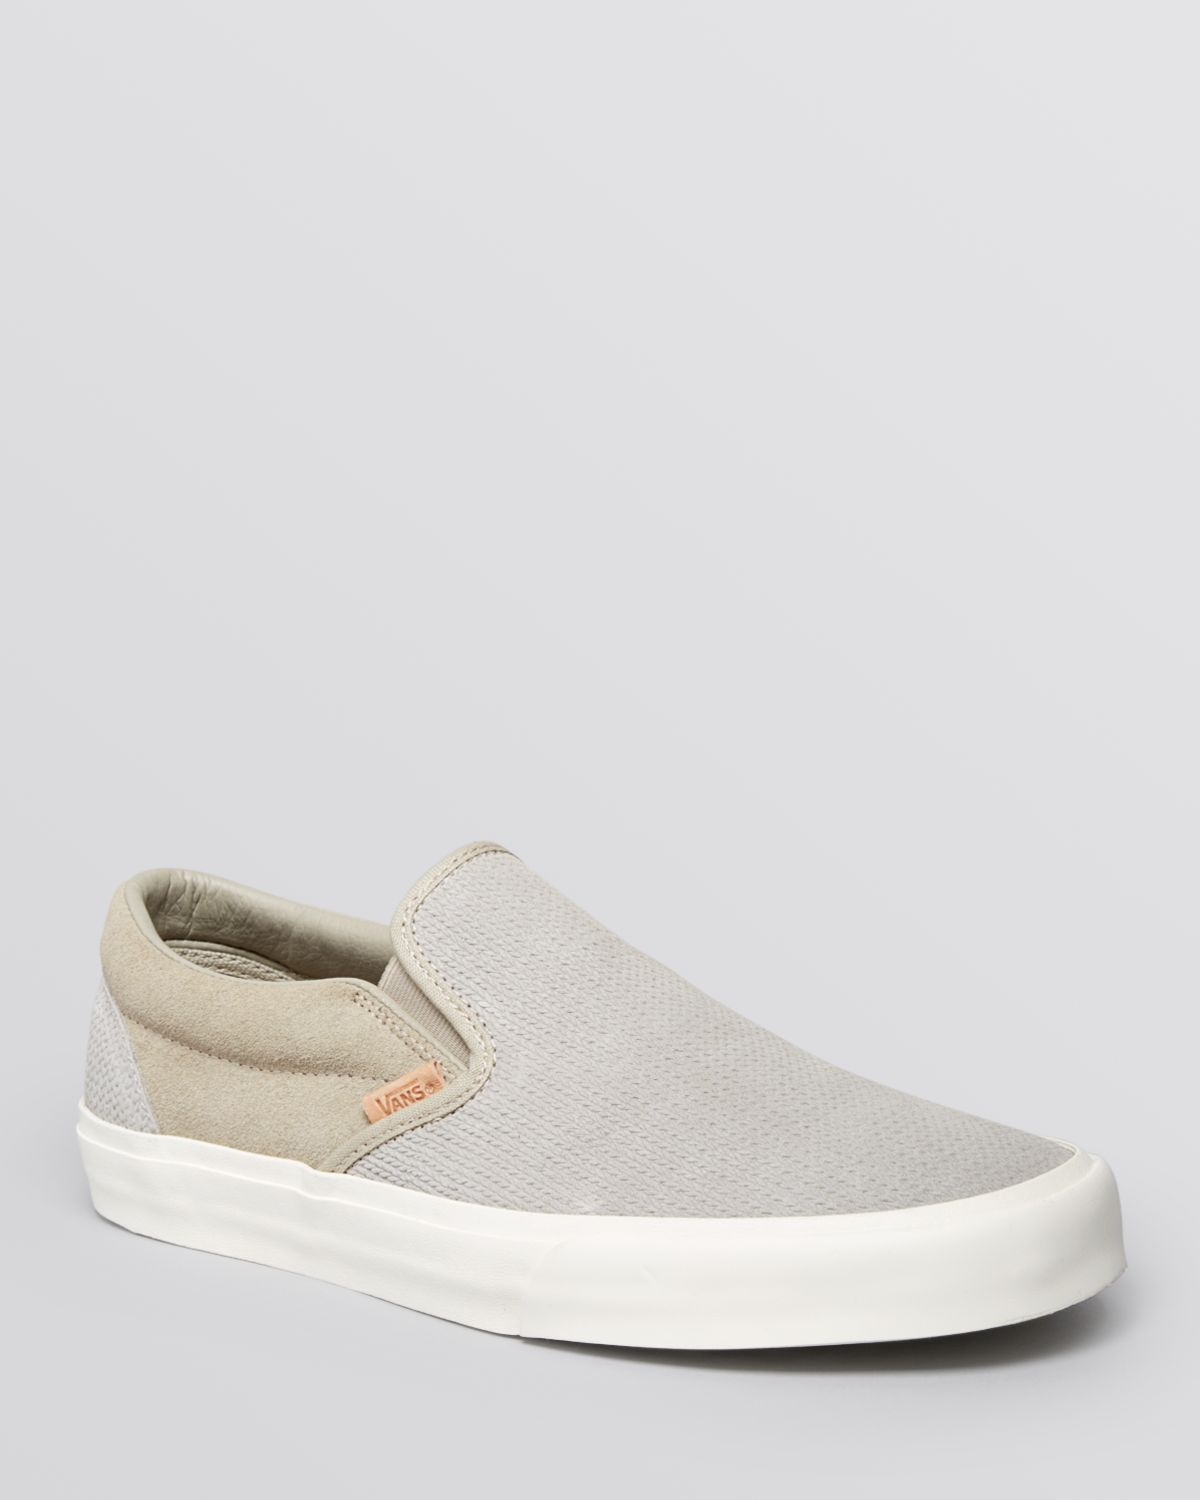 5f809994af Lyst - Vans Classic Ca Knit Suede Slip On Sneakers in Gray for Men